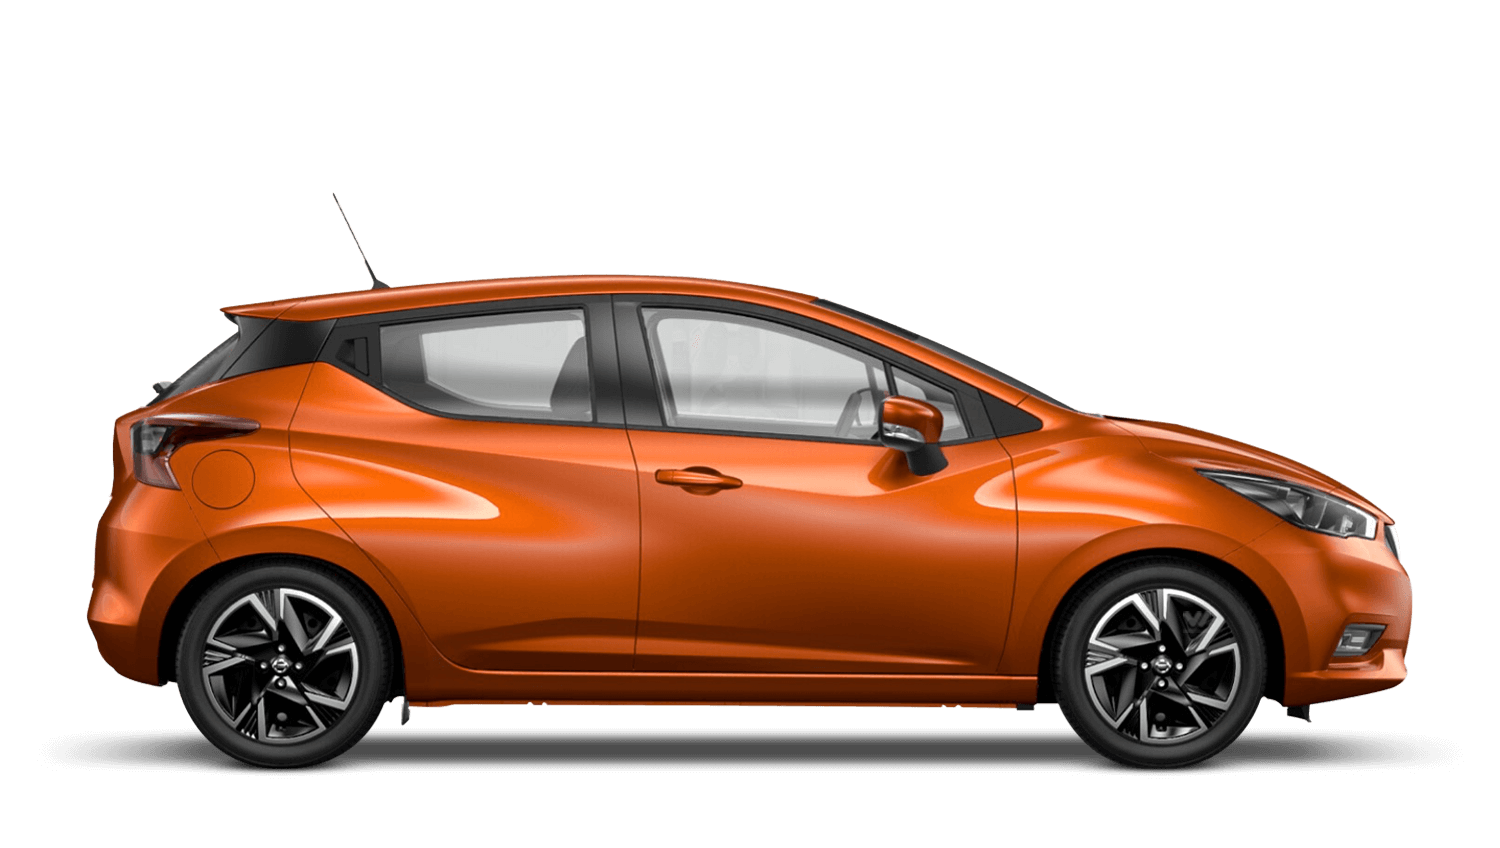 Energy Orange Nissan Micra